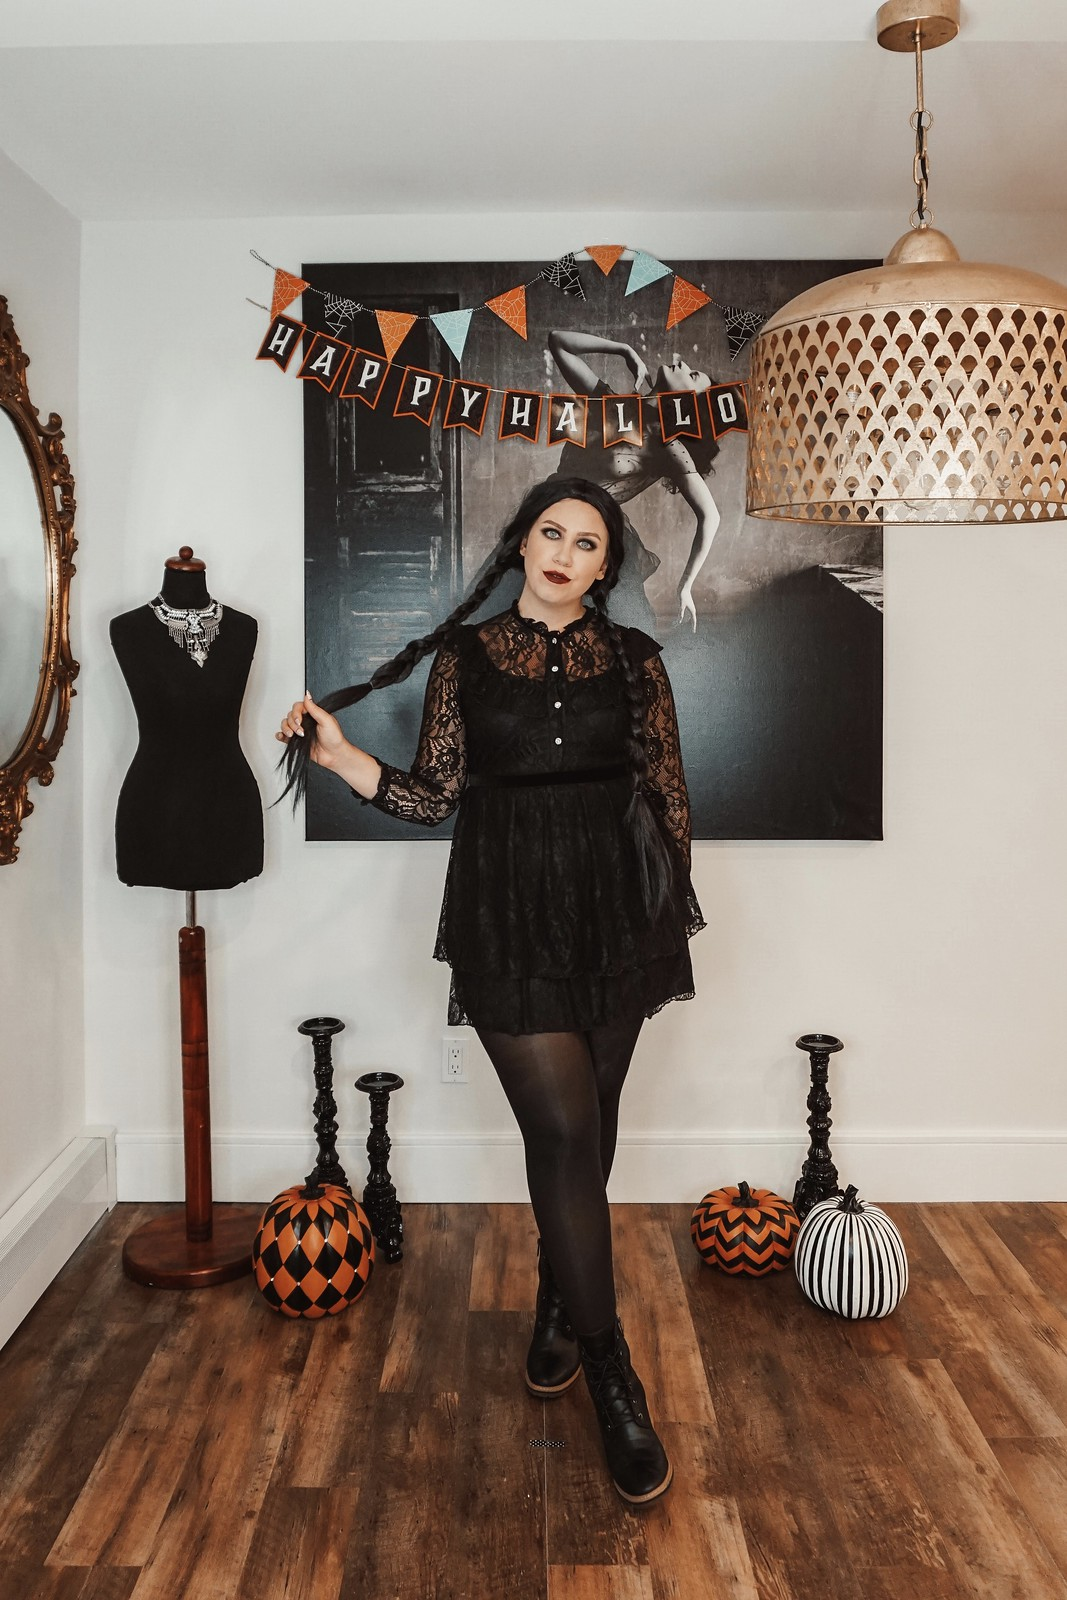 Wednesday Addams Costume The Addams Family | Iconic Movie Halloween Costumes | Women Movie Costumes | Iconic Halloween Costumes | Easy Halloween Costumes | Costumes from your Closet | DIY Halloween Costumes Inspired by your Favorite Character